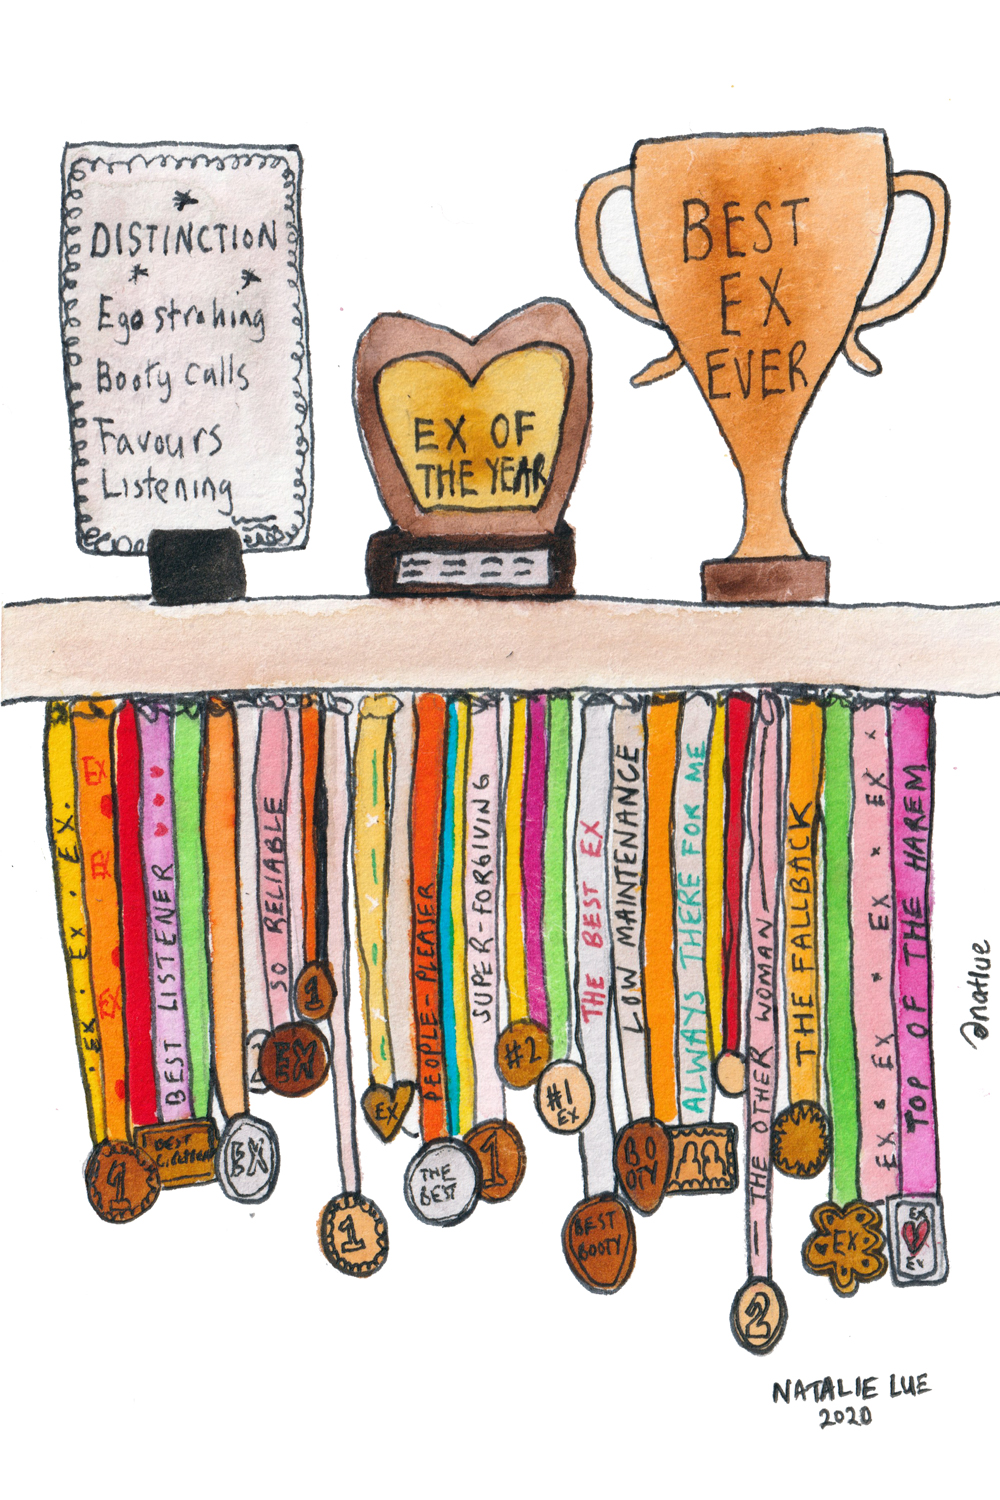 The best ex in the world medals illustration | Natalie Lue